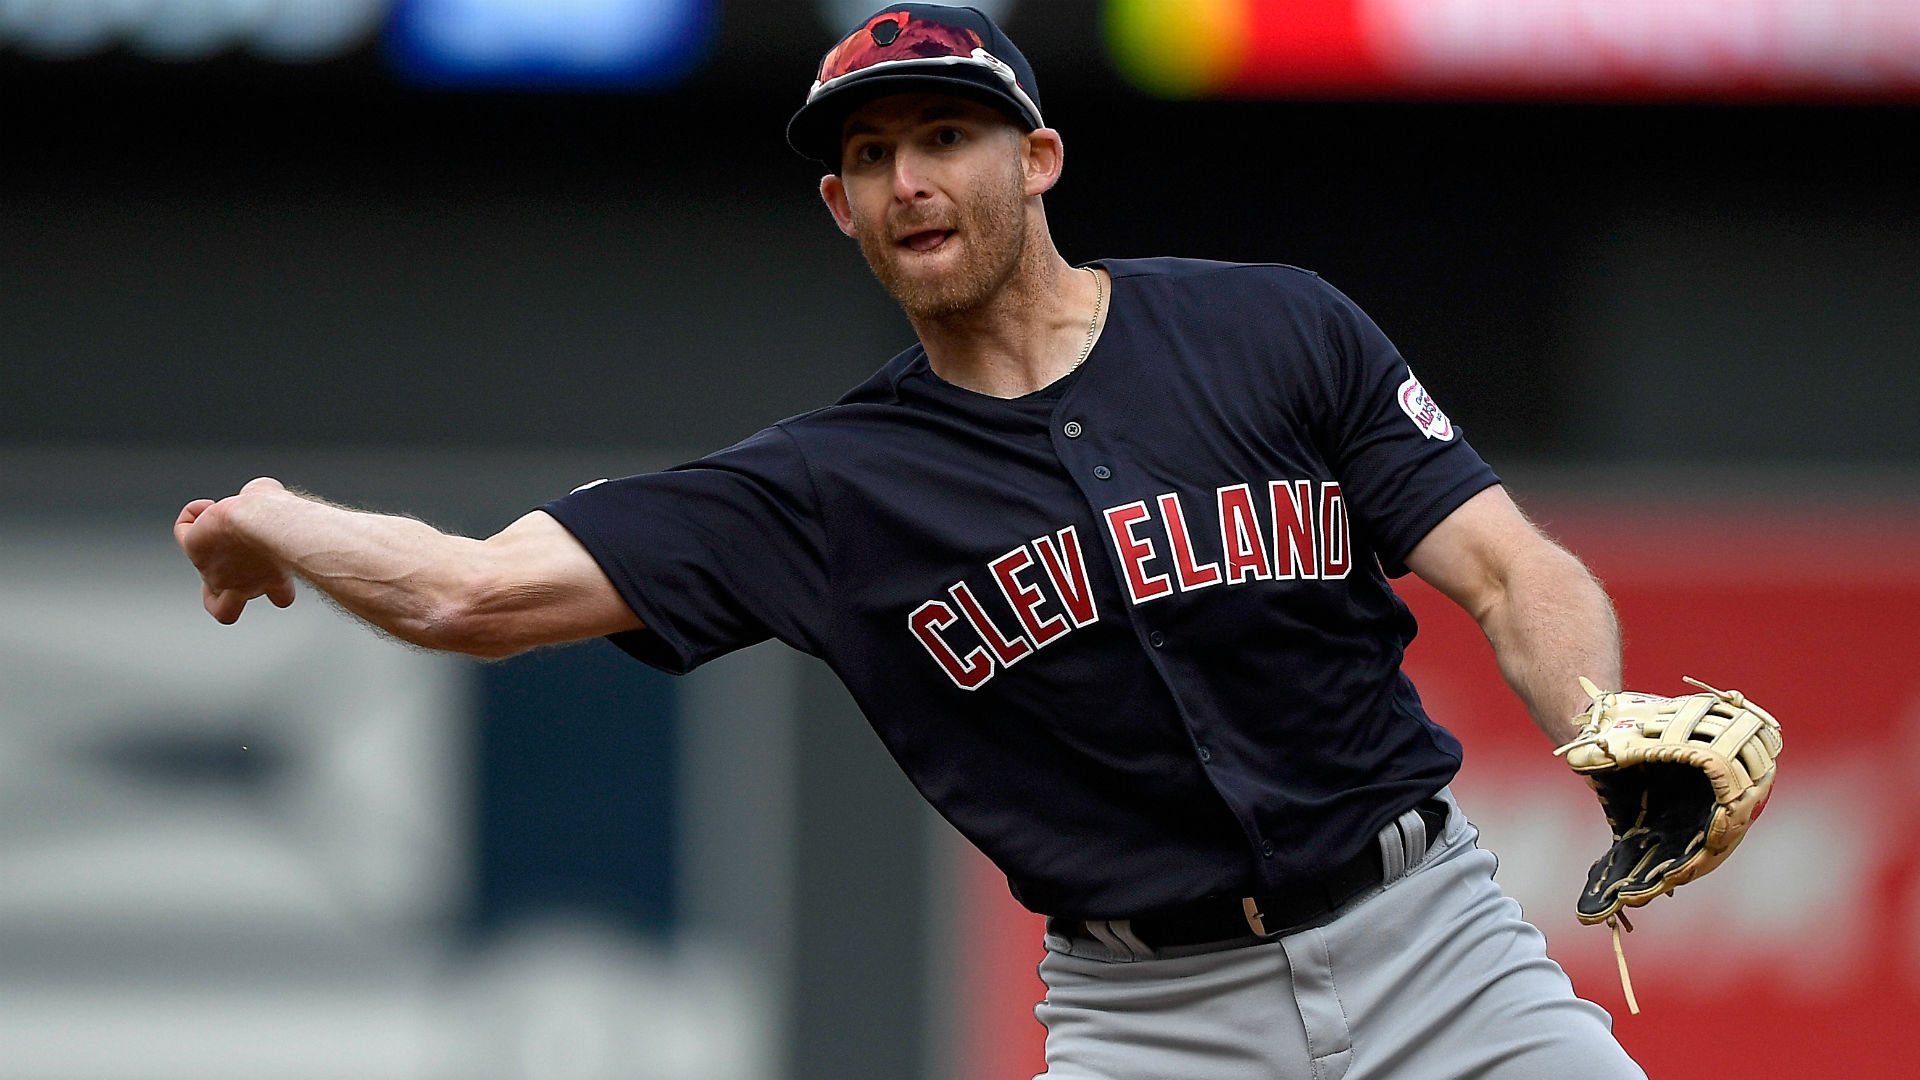 Miller hit 30 home runs in 2016, and has been one of the Indians' best hitters this year, but Cleveland is demoting him to the minors.